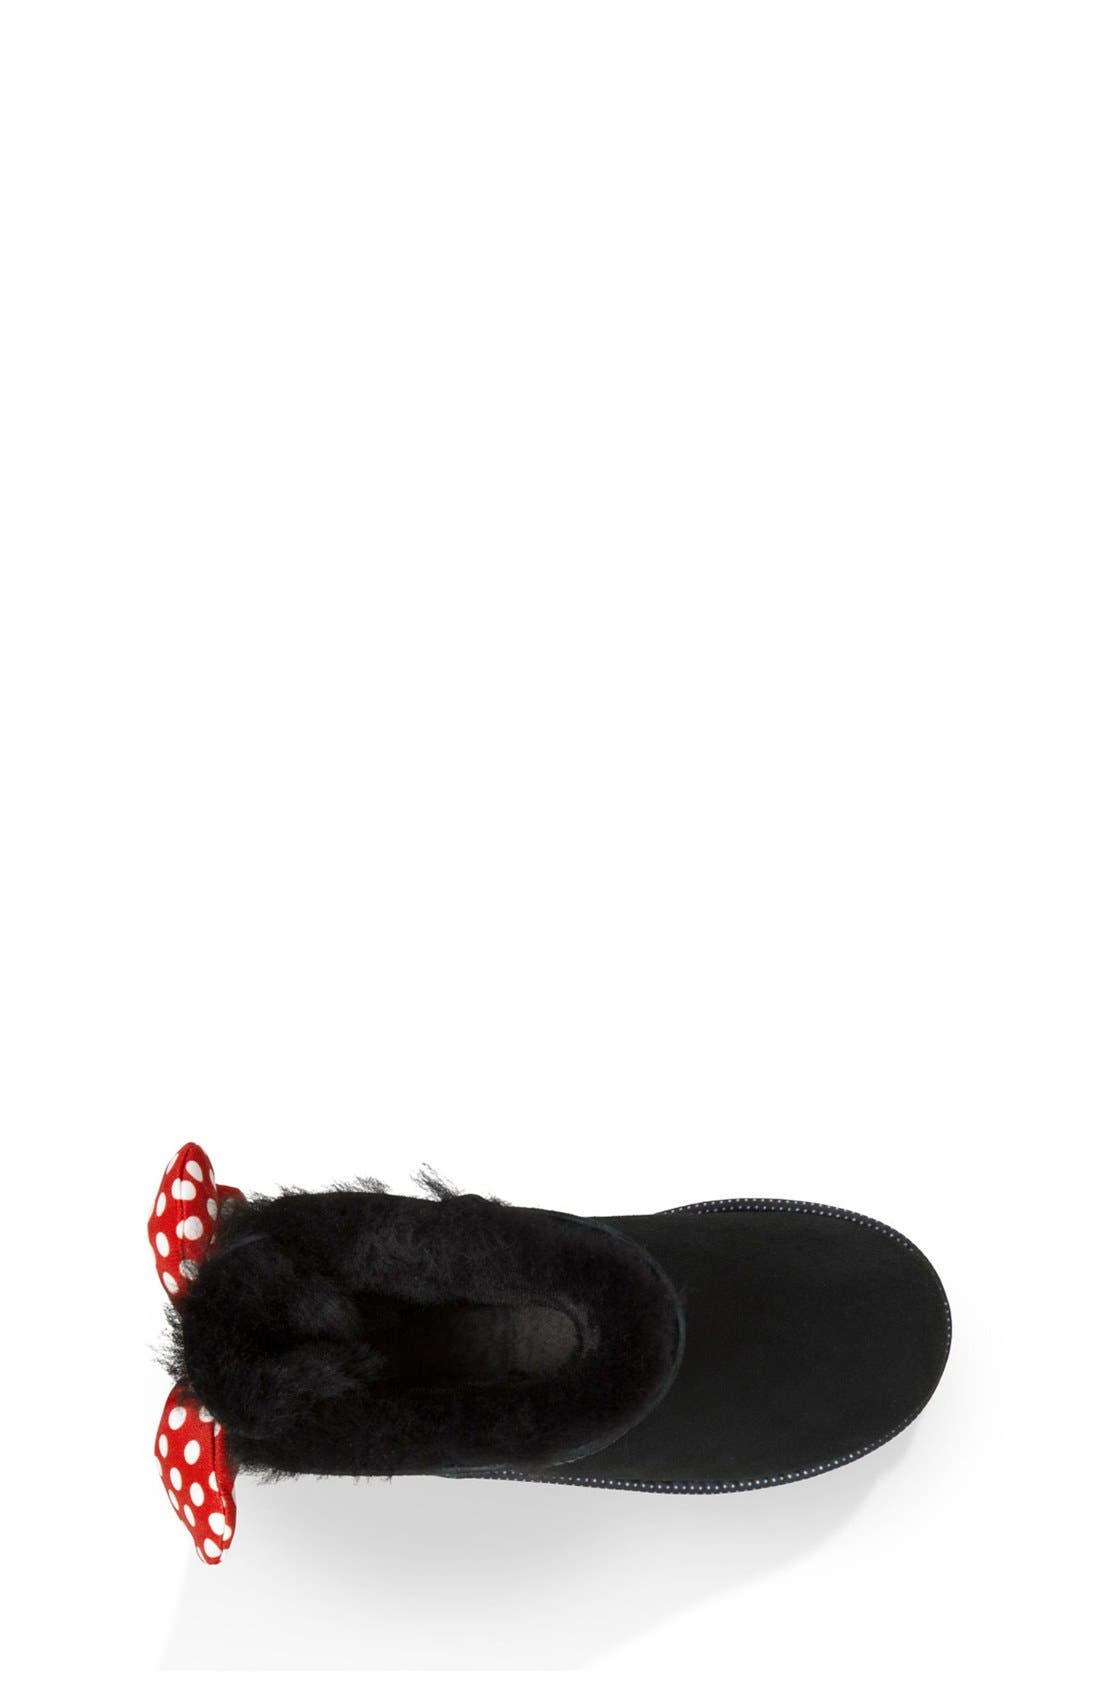 Disney<sup>®</sup> 'Sweetie Bow' Boot,                             Alternate thumbnail 4, color,                             001